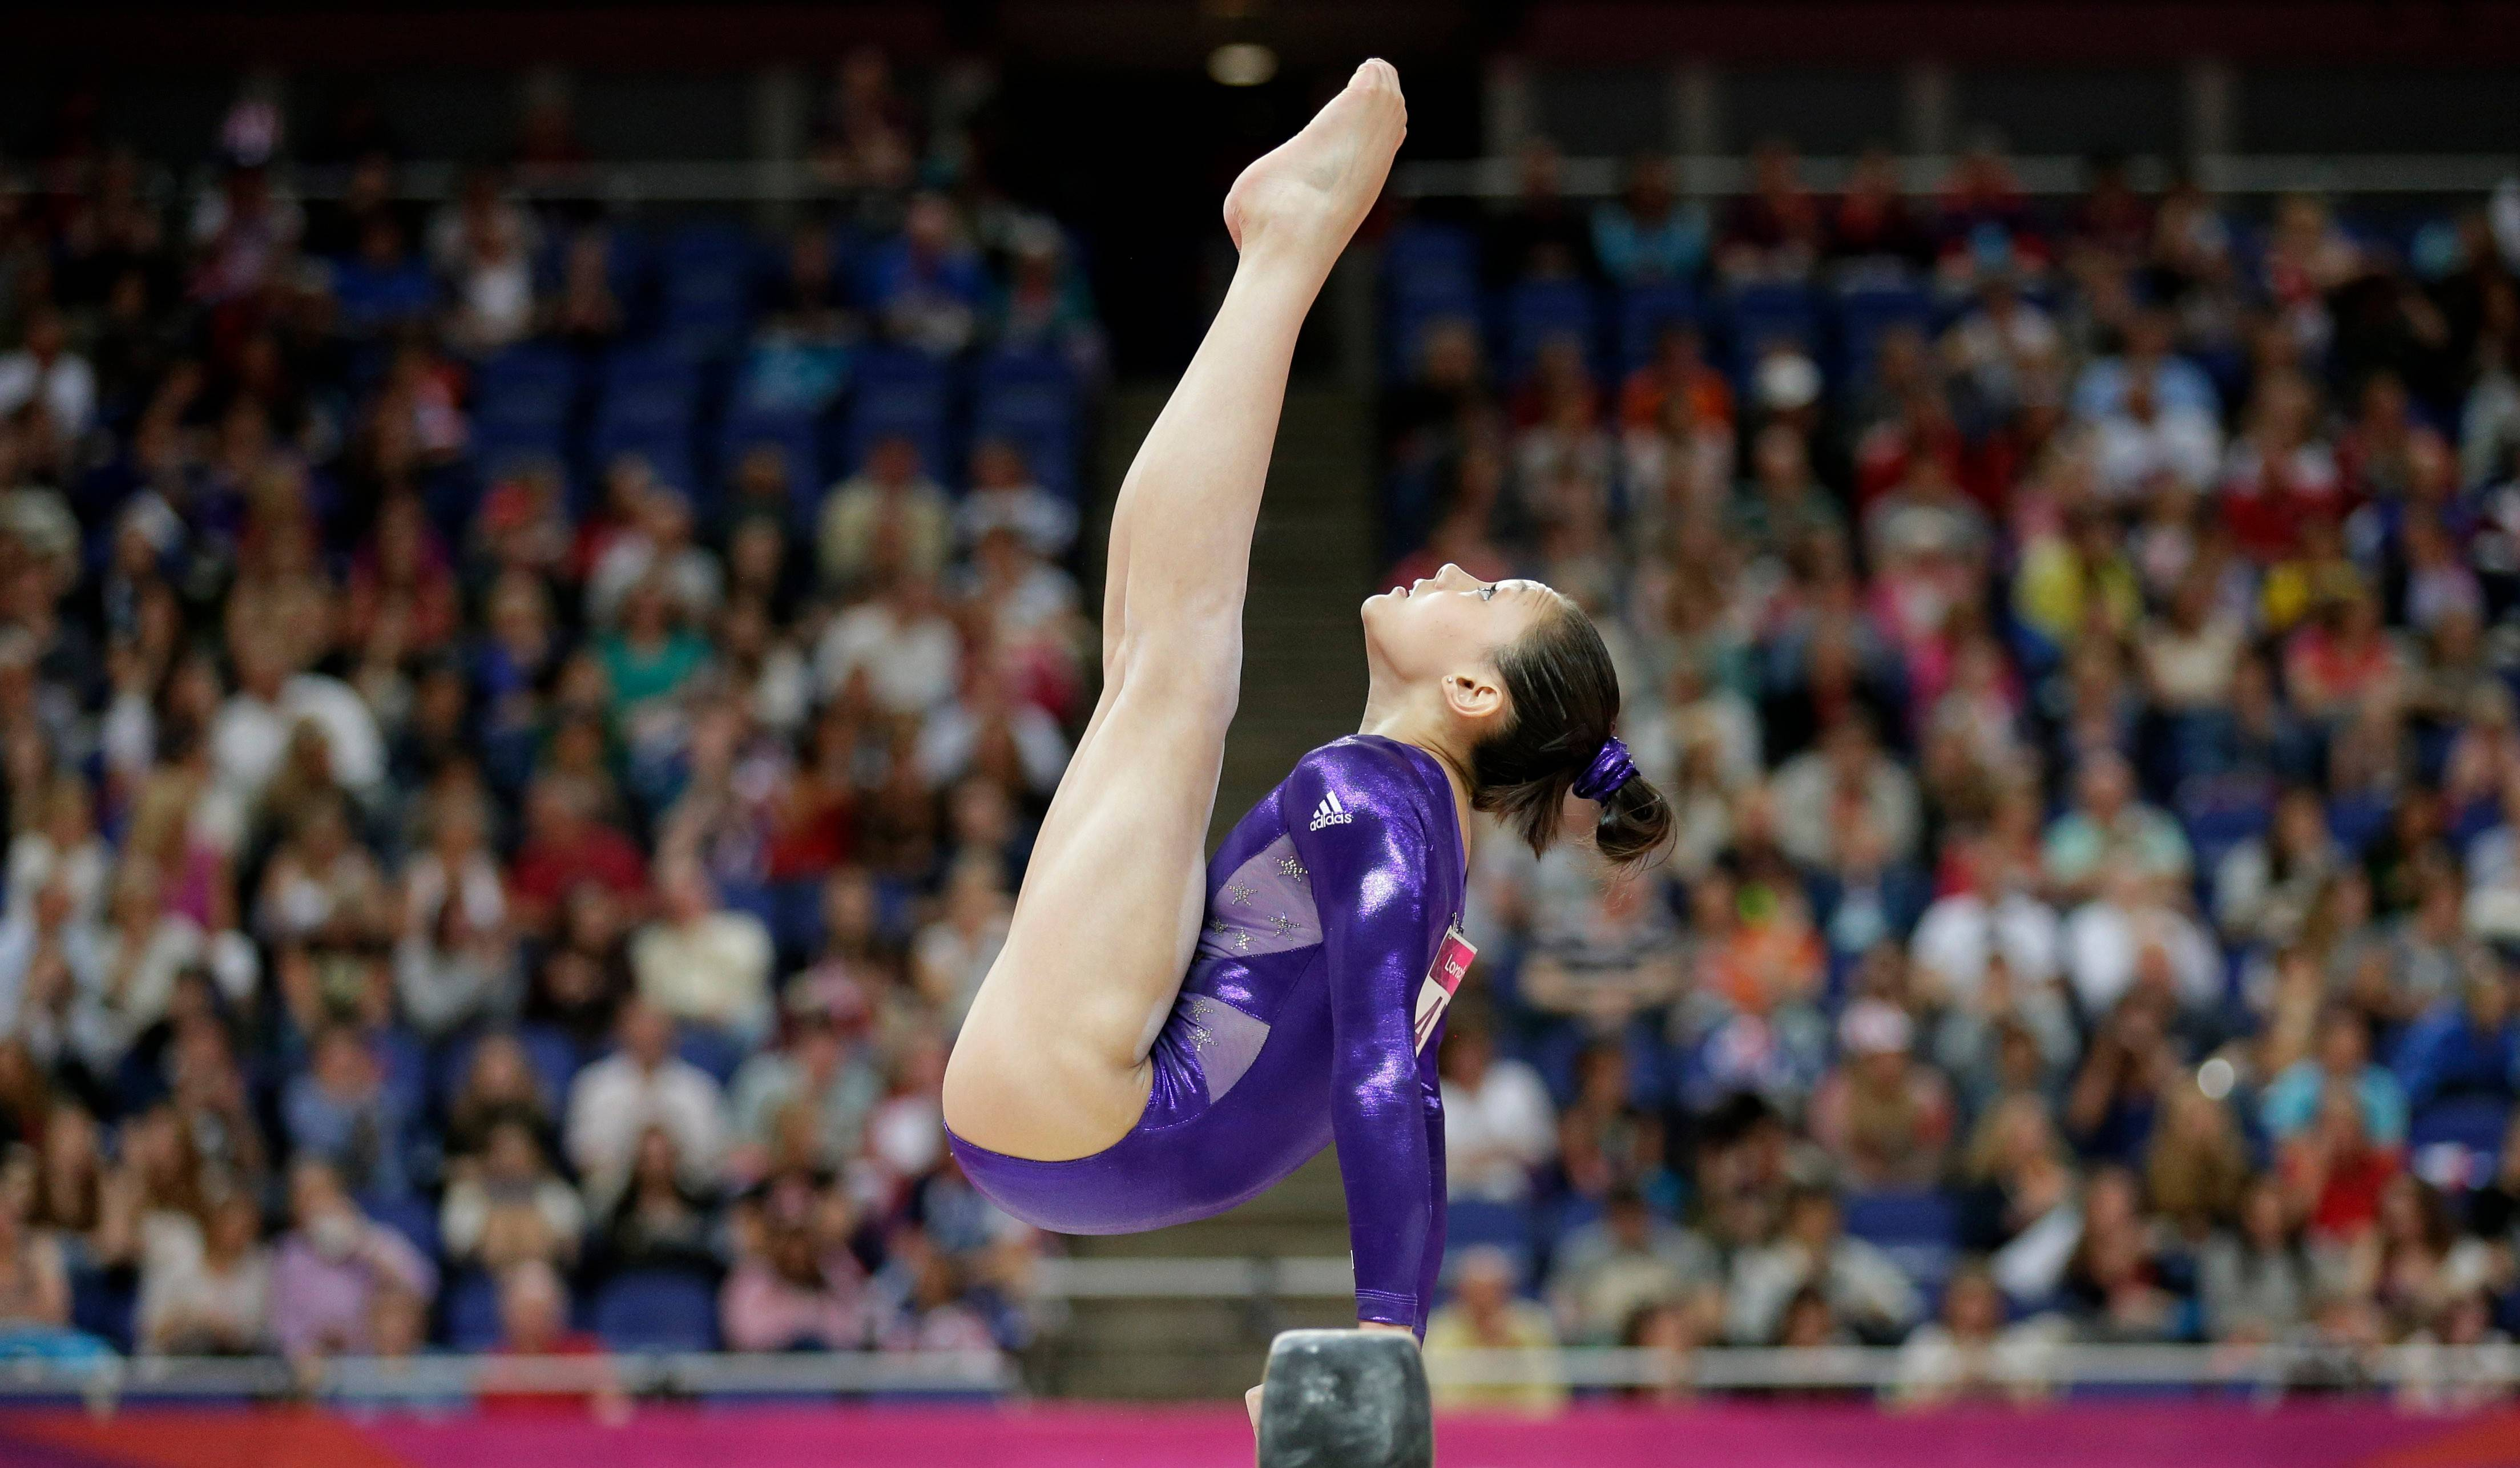 Olympic champion Kyla Ross is expected to compete at the Secret U.S. Classic Gymnastics Championship at the Sears Centre Arena in Hoffman Estates on Saturday, Aug. 2.